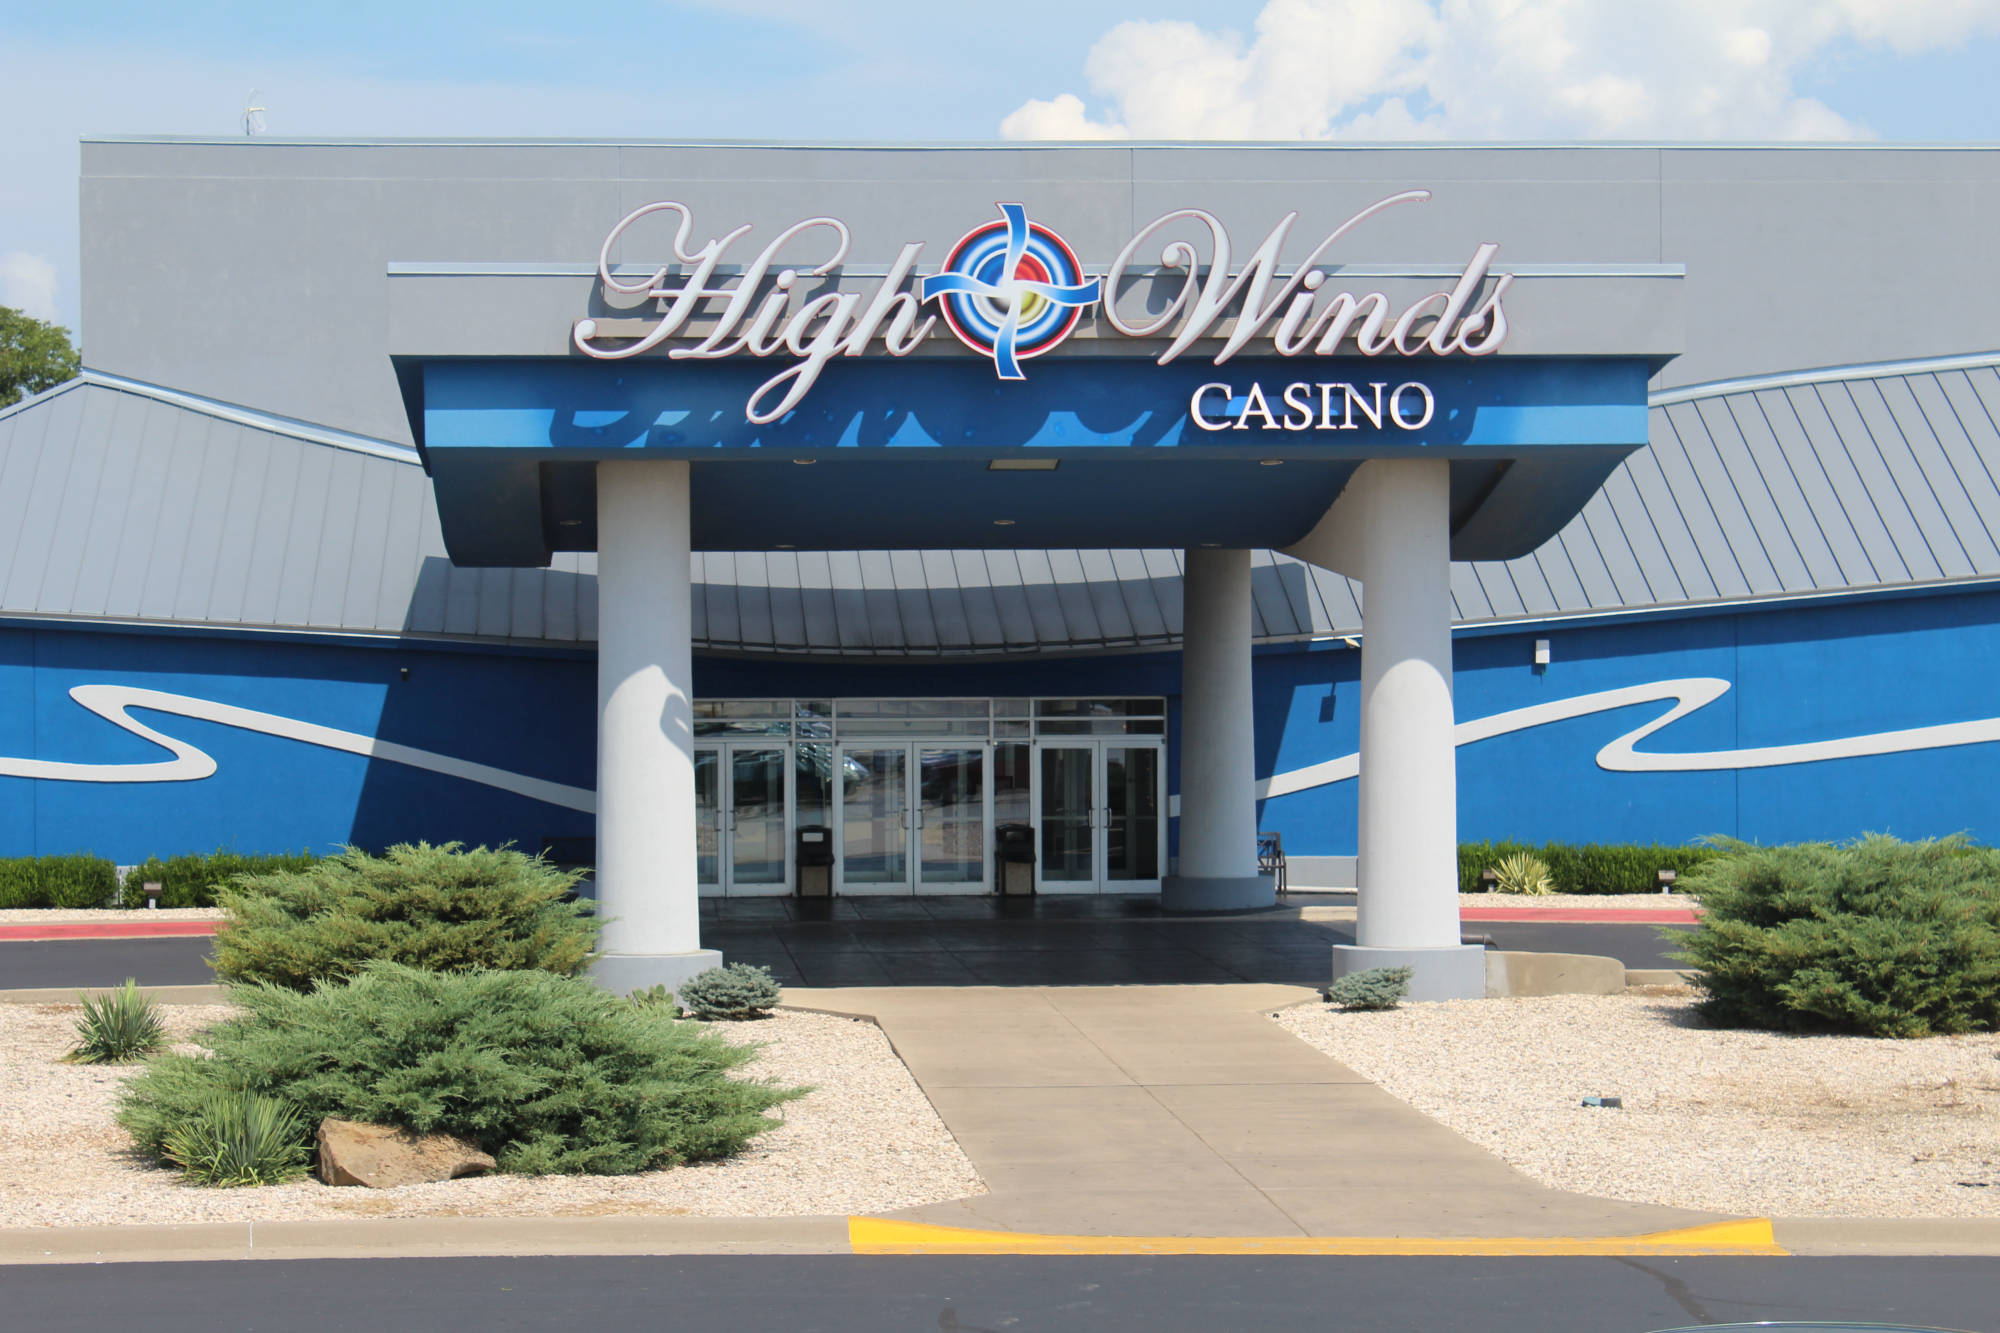 Casino four oklahoma wind games played in the casino